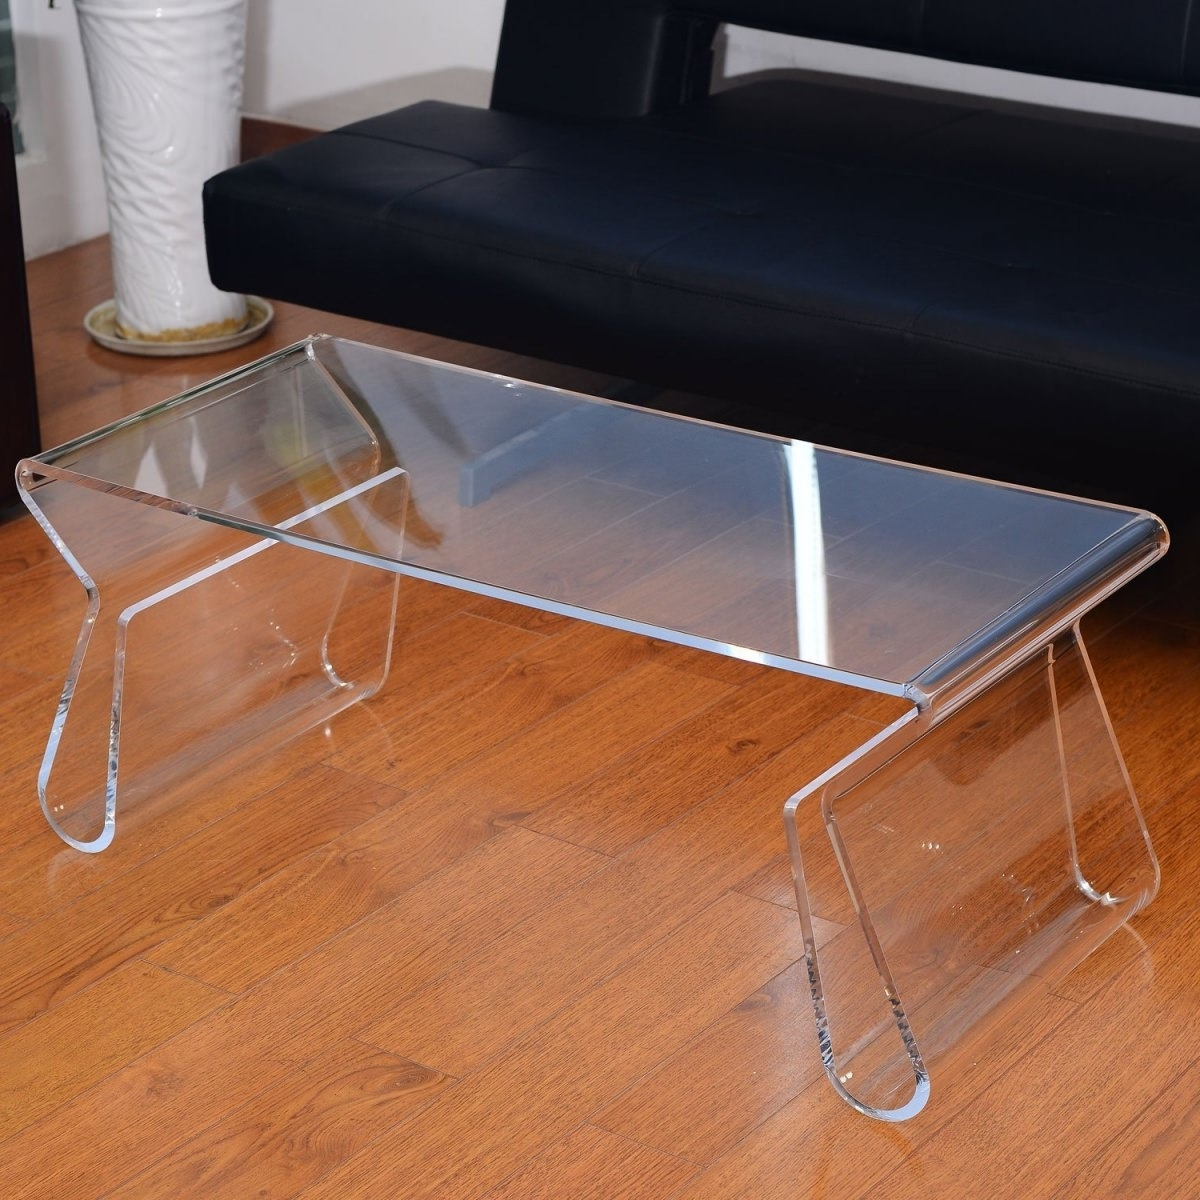 Sushi Ichimura Decor Pertaining To Current Peekaboo Acrylic Tall Coffee Tables (View 8 of 20)